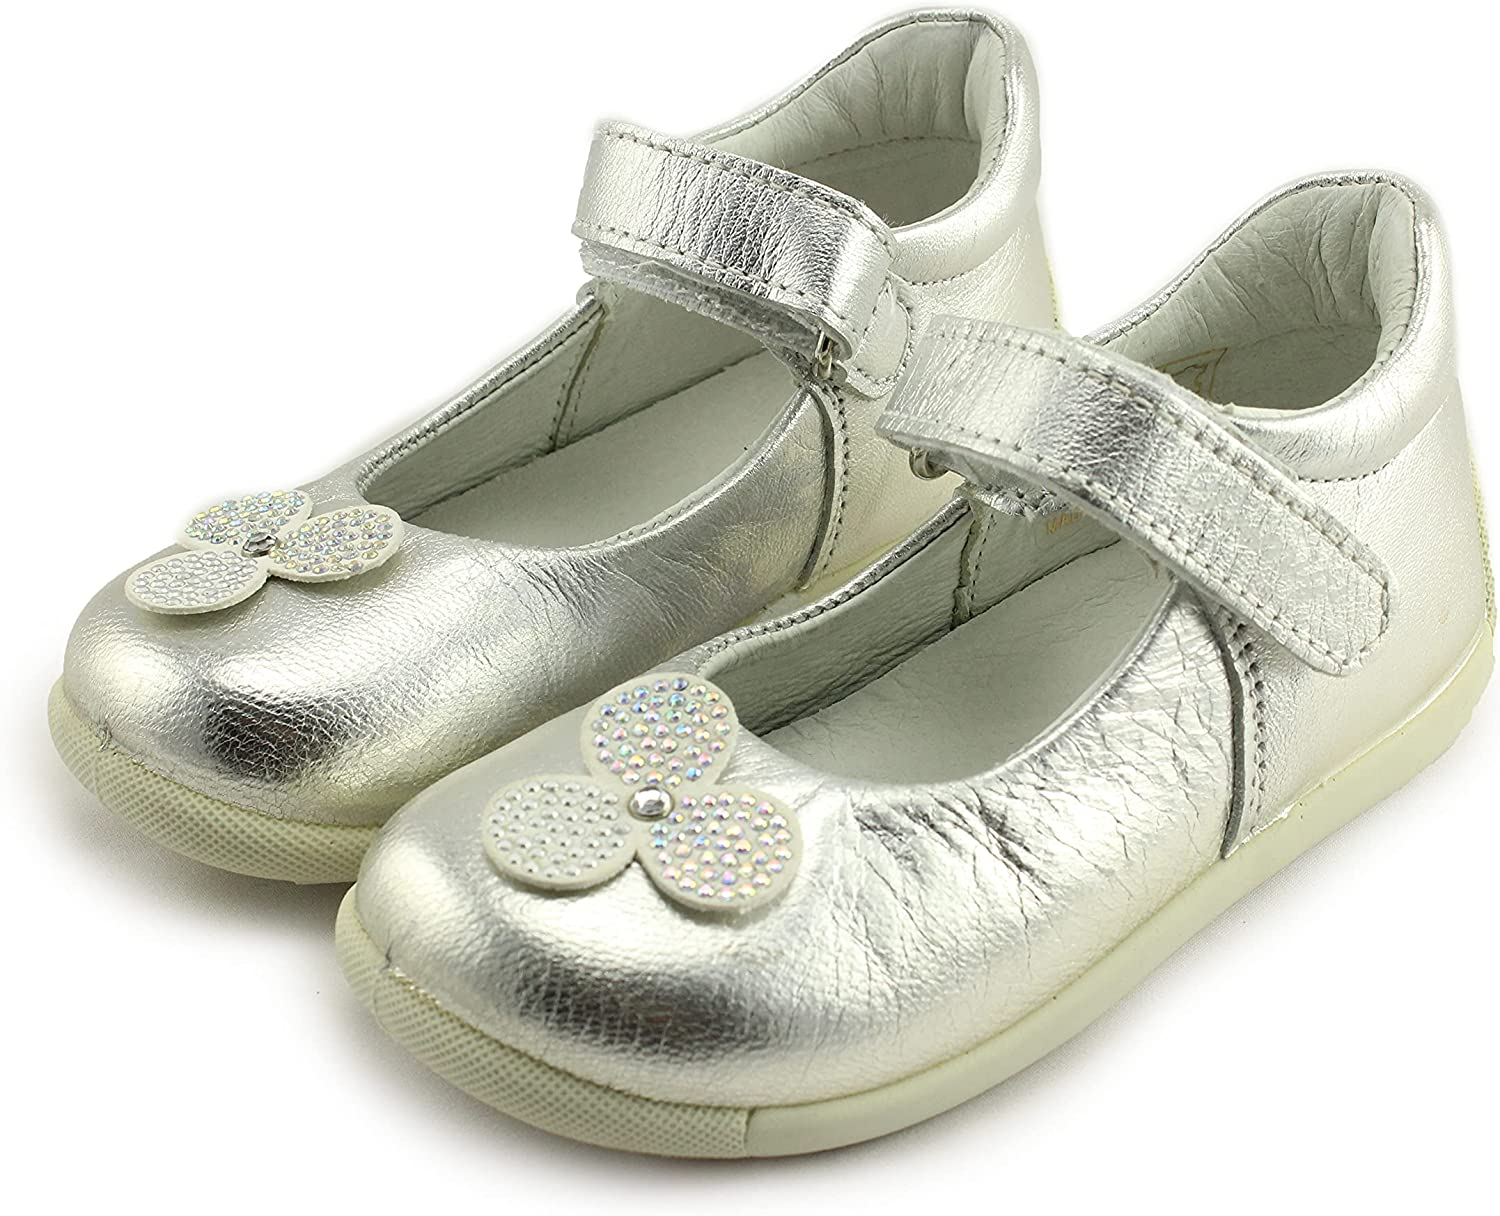 Primigi Girls Mary Jane Leather Shoes with Arch, Ankle, and Orthopedic Support (75173/00 Capra Laminata/Argen)